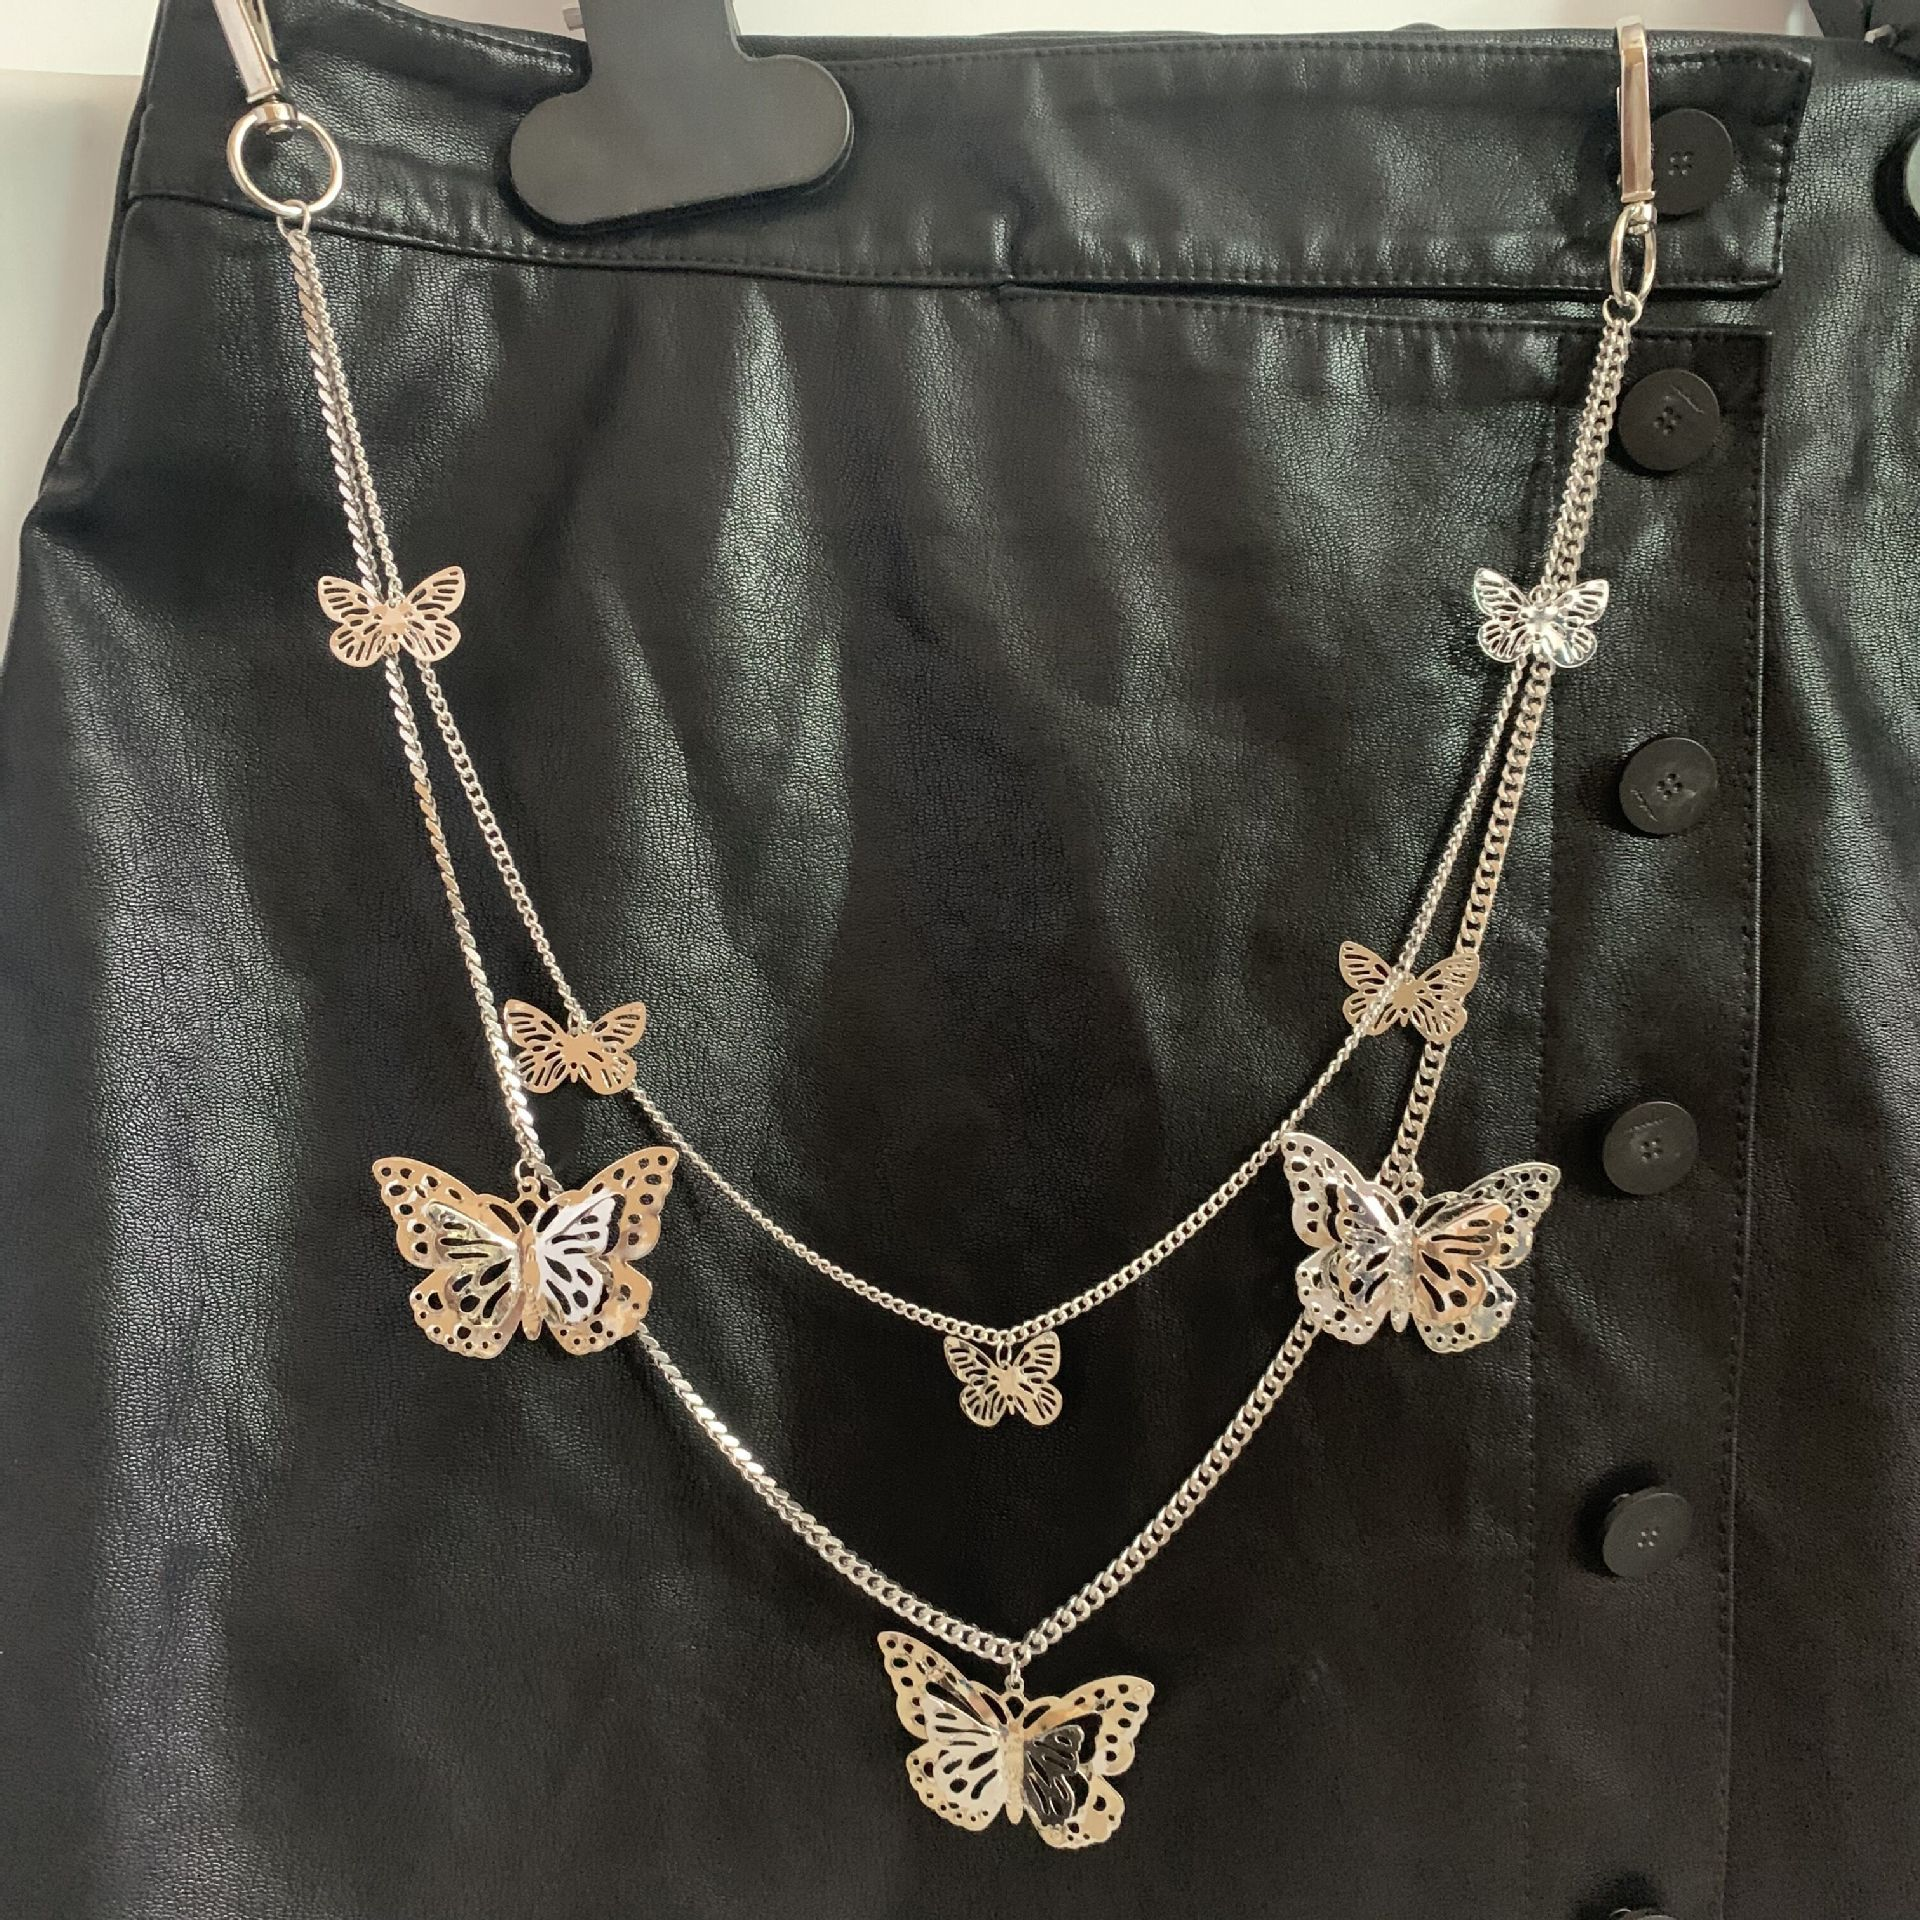 Alloy Butterfly Chain for Gothic Fashion Style